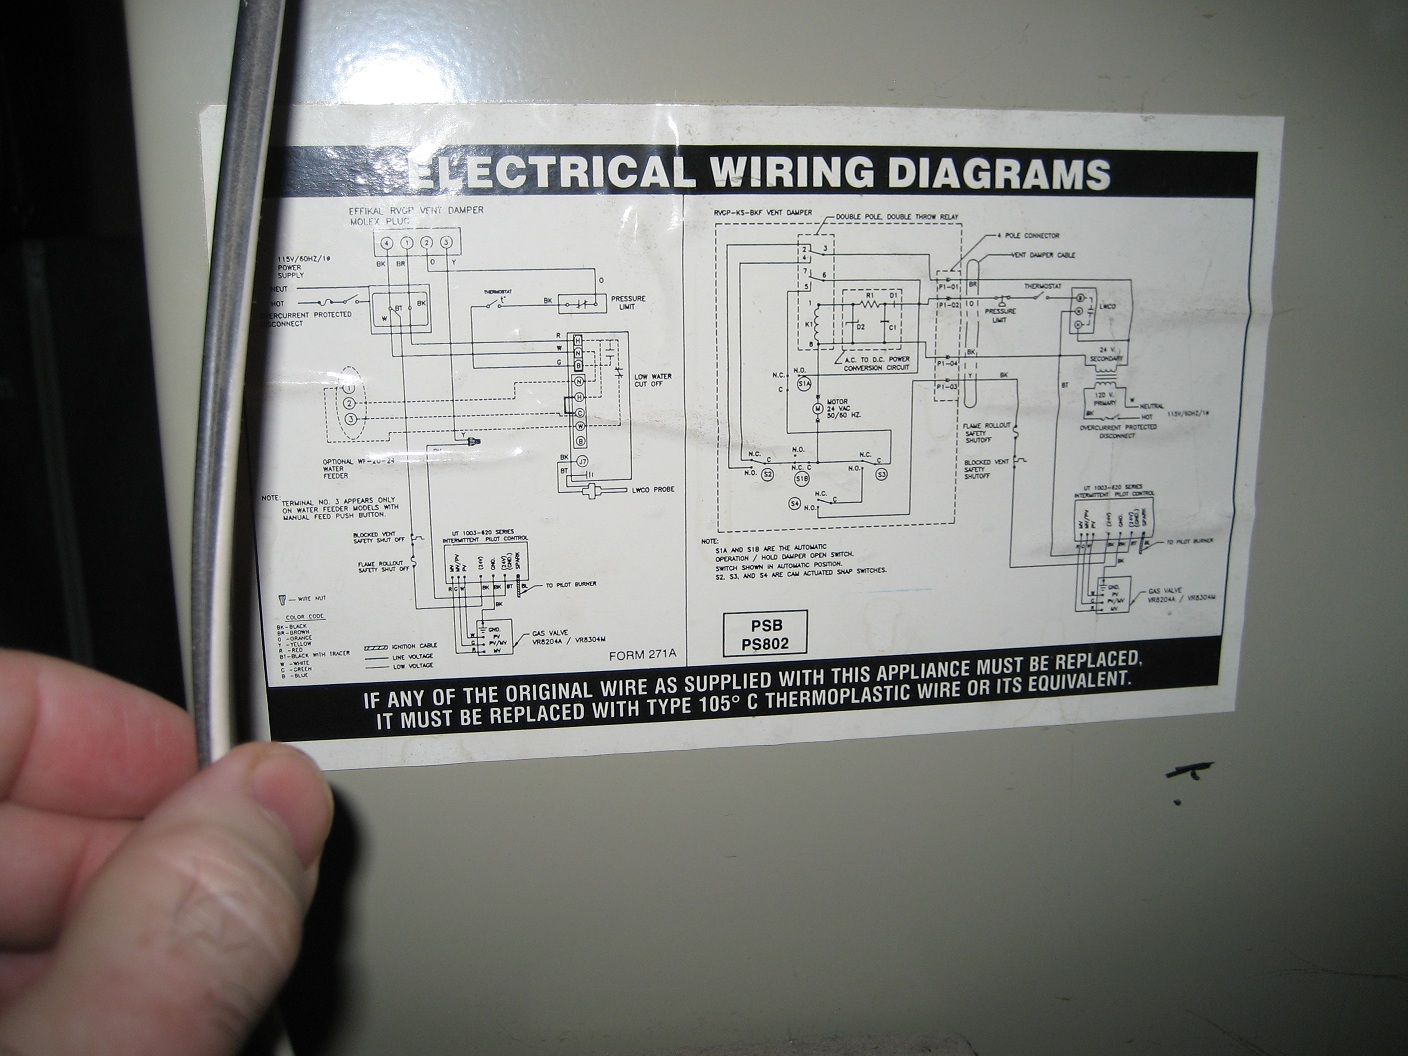 I Have A Carrier Dunkirk Natural Gas Steam Boiler Installed In 2001 Low Water Cut Off Wiring Diagram Is It Possible That The On Relay Not Correct